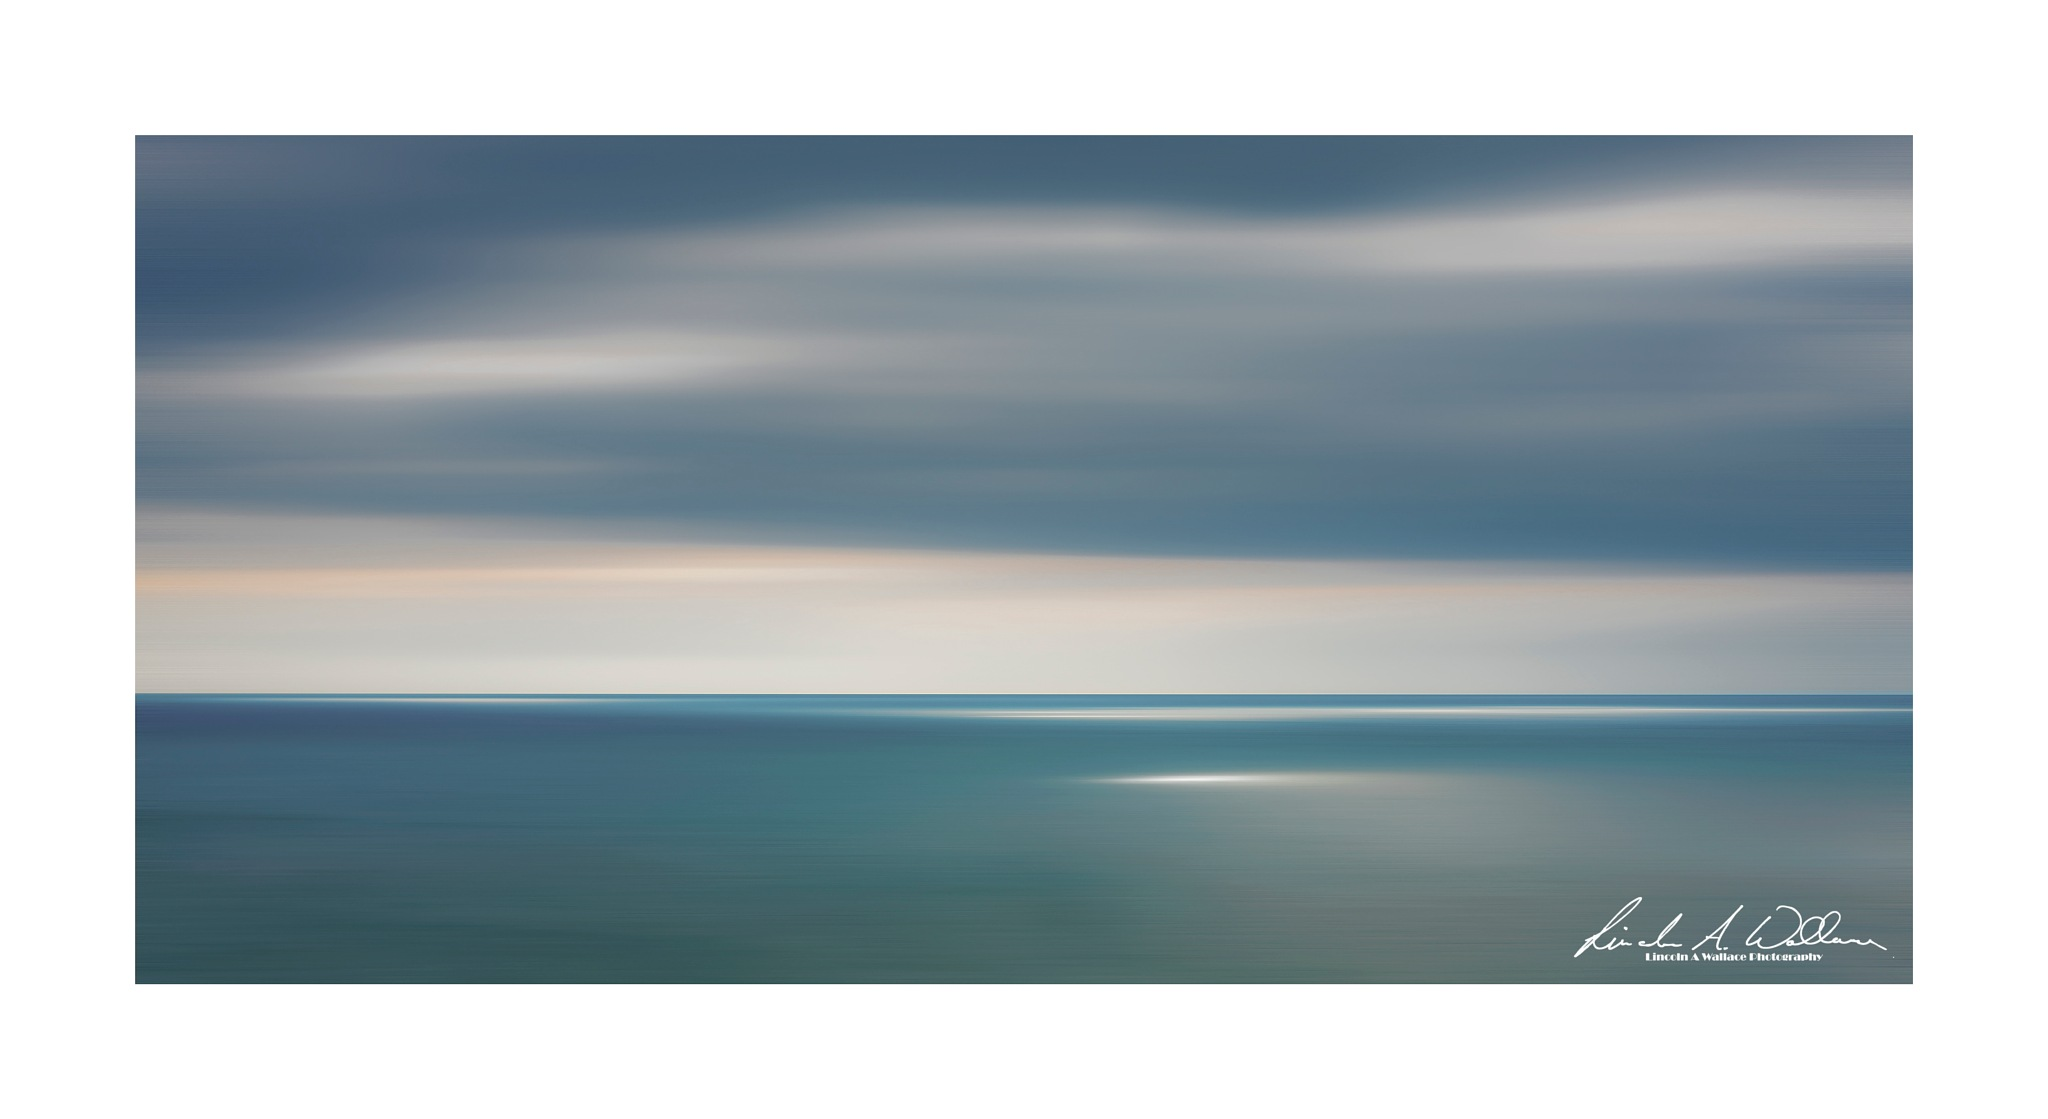 Southsea II by Lincoln A Wallace